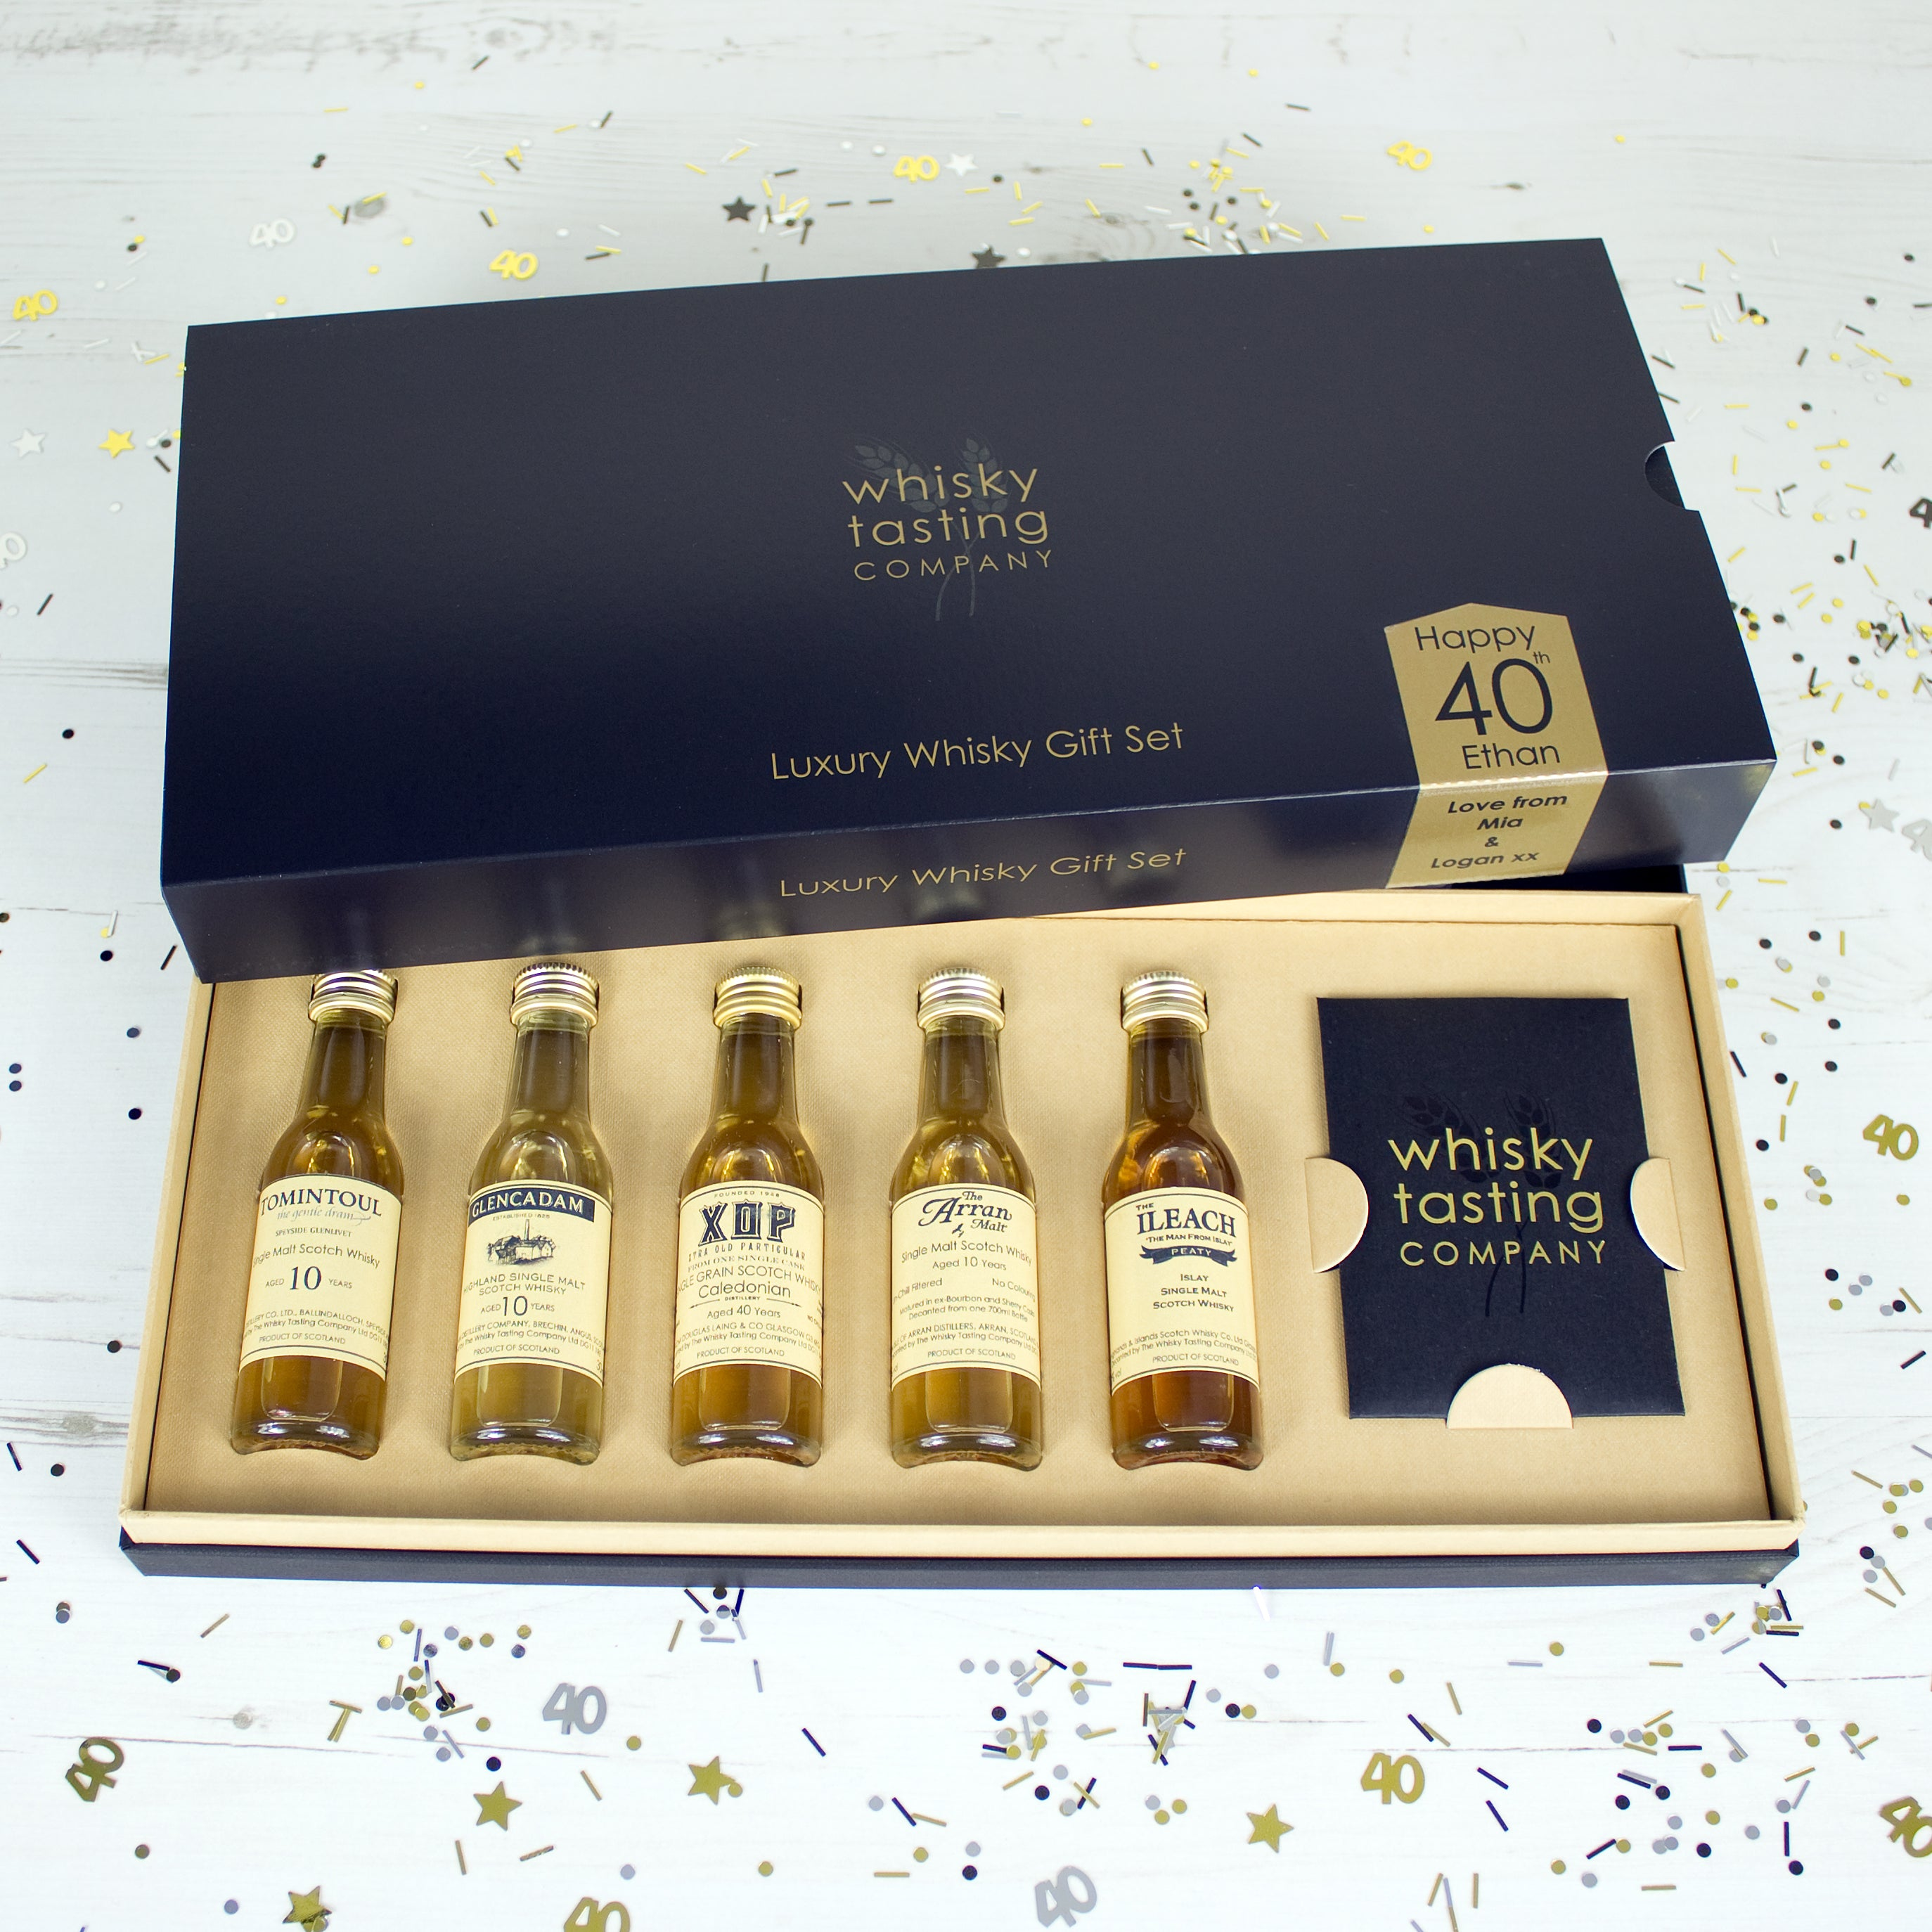 40 year old Cameronbridge Scotch whisky in gift set with Scottish single malts from Tomintoul, Glencadam, Arran and The Ileach single malts.